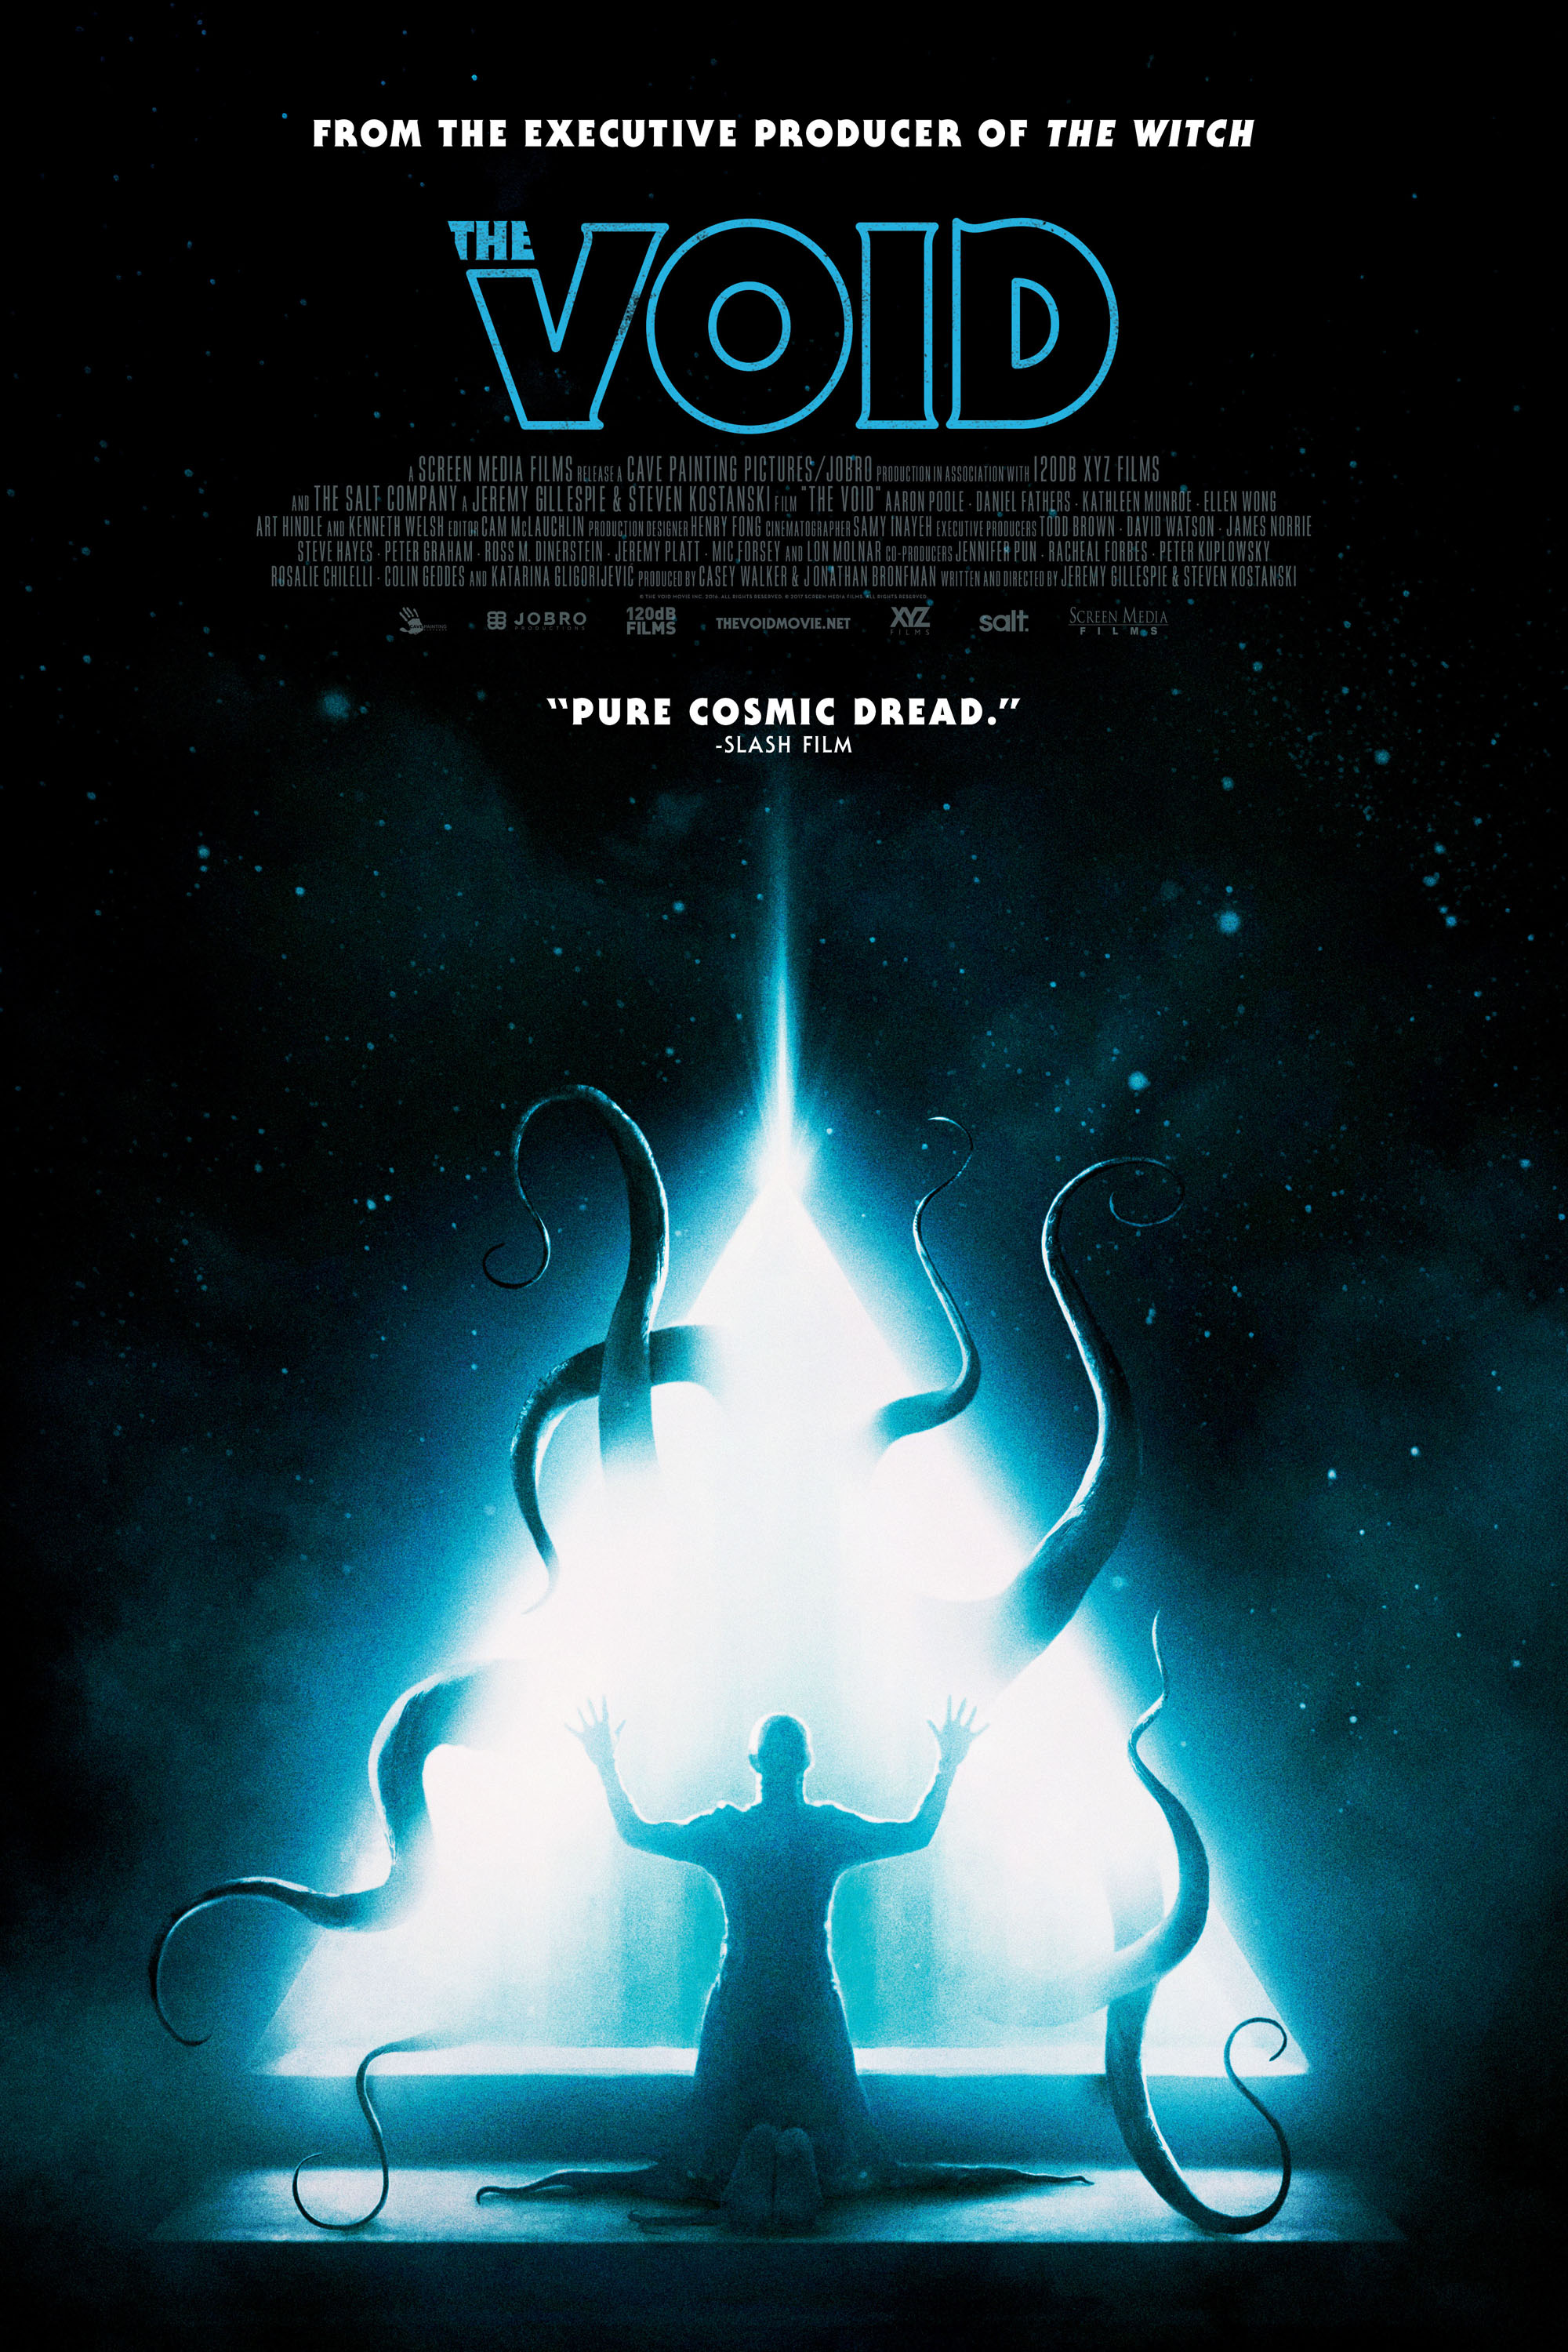 Poster for The Void